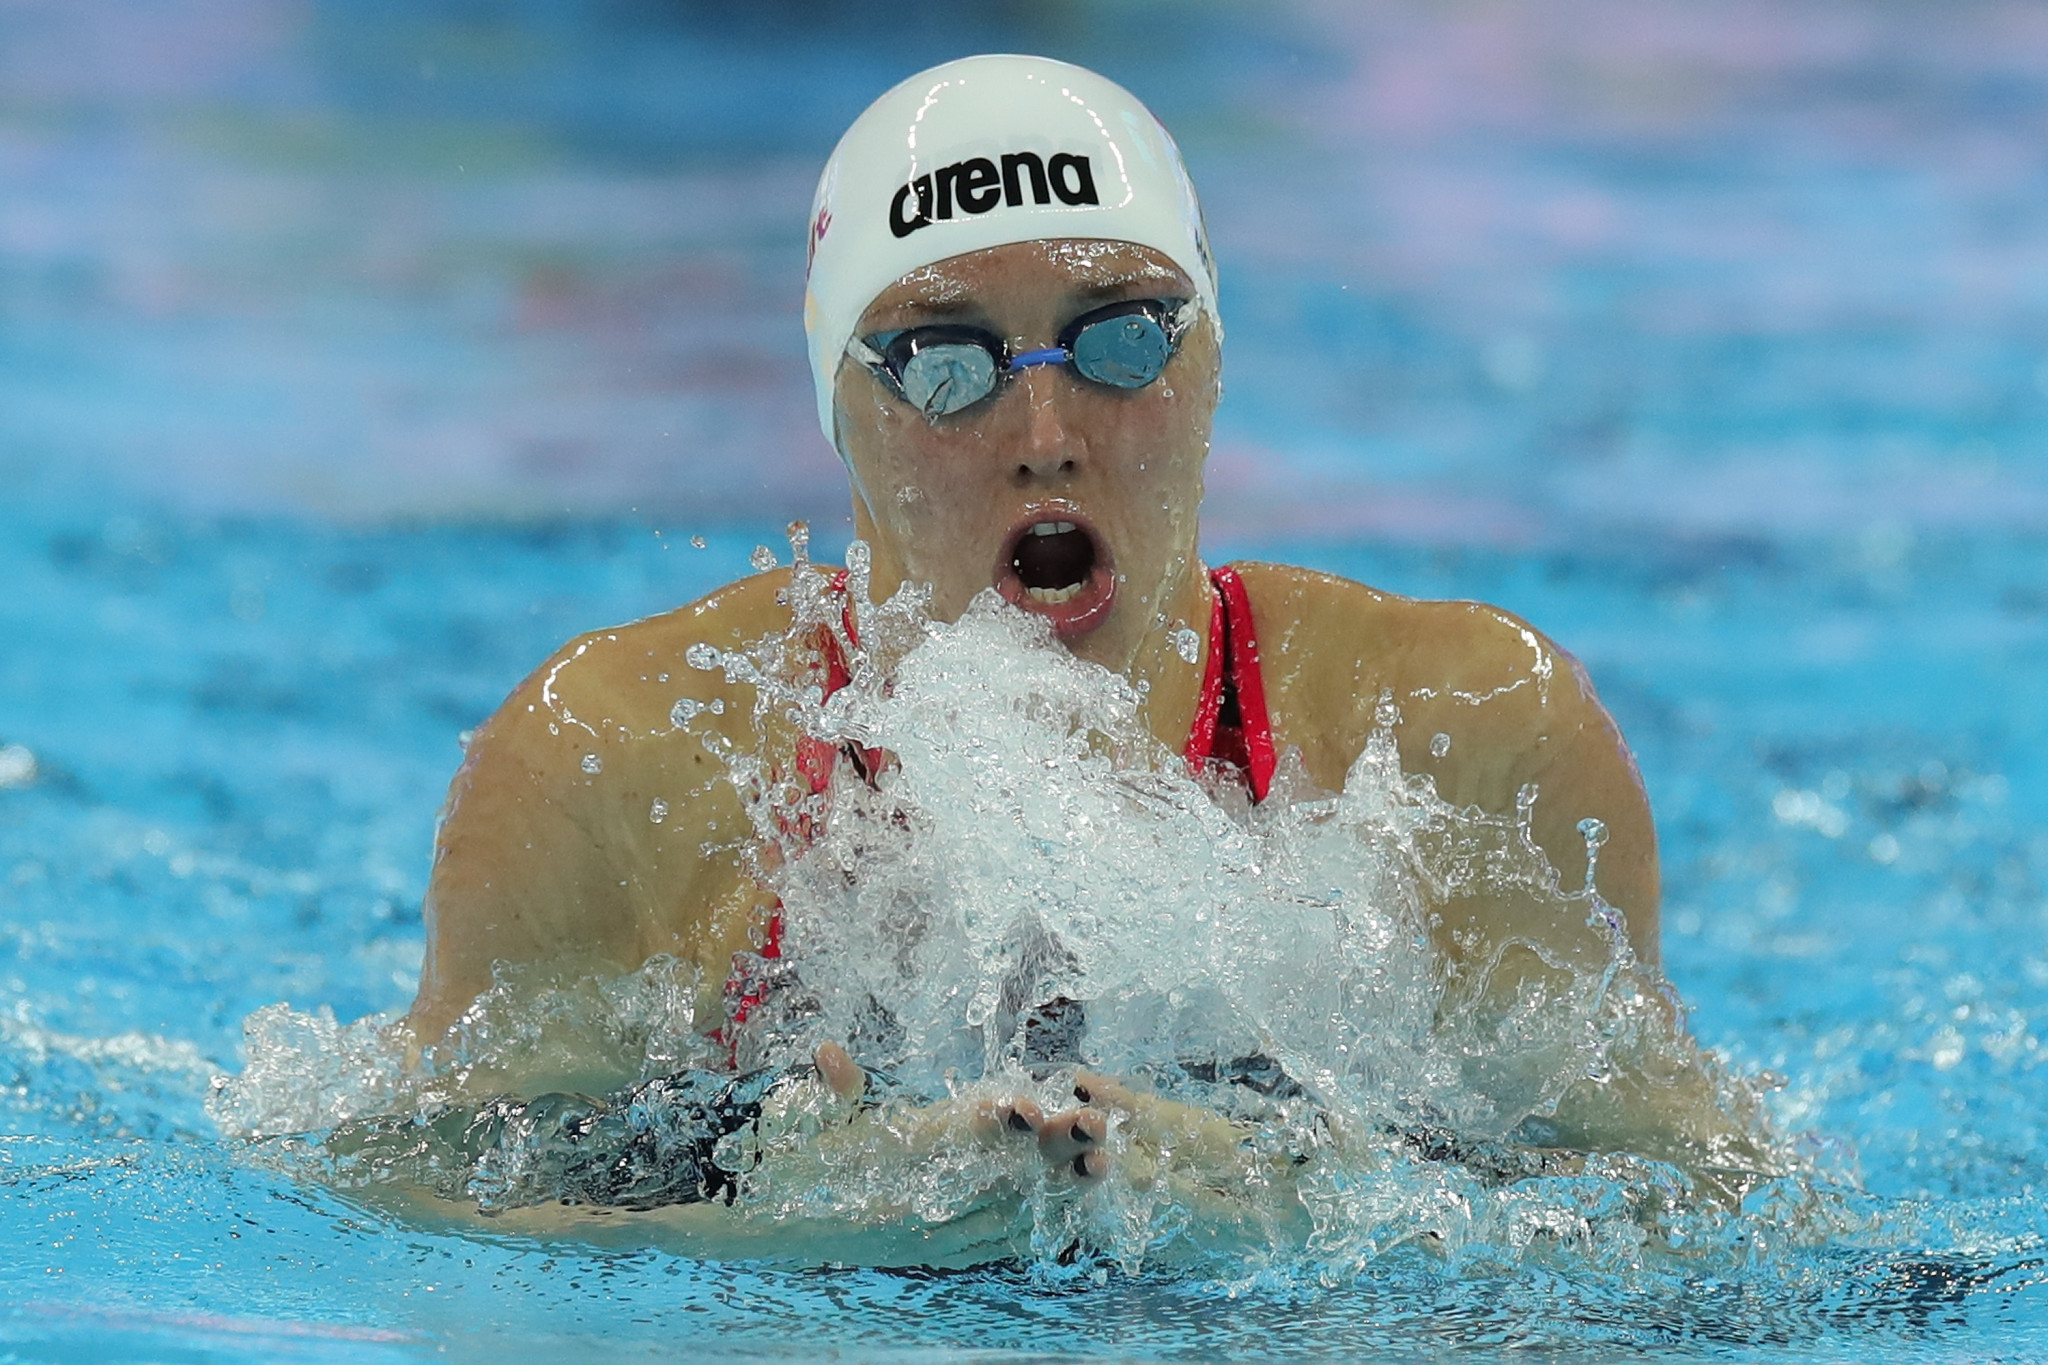 Hungary's Katinka Hosszu is competing in the inaugural FINA Champions Swim Series event ©Getty Images